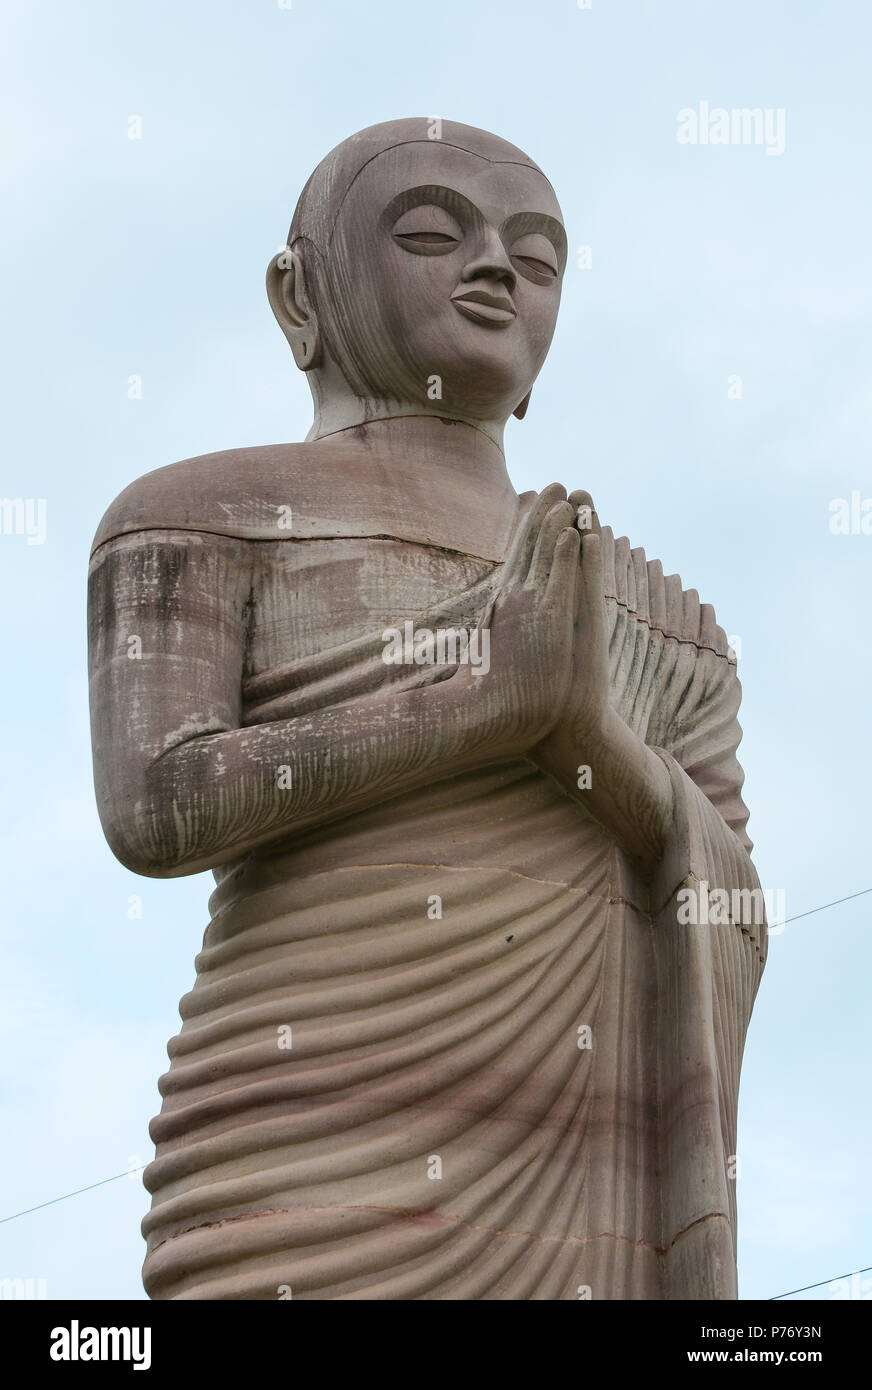 Ancient Giant Buddha Statue in Bodhgaya, India. Bodhgaya is the most revered of all Buddhist sacred sites. - Stock Image